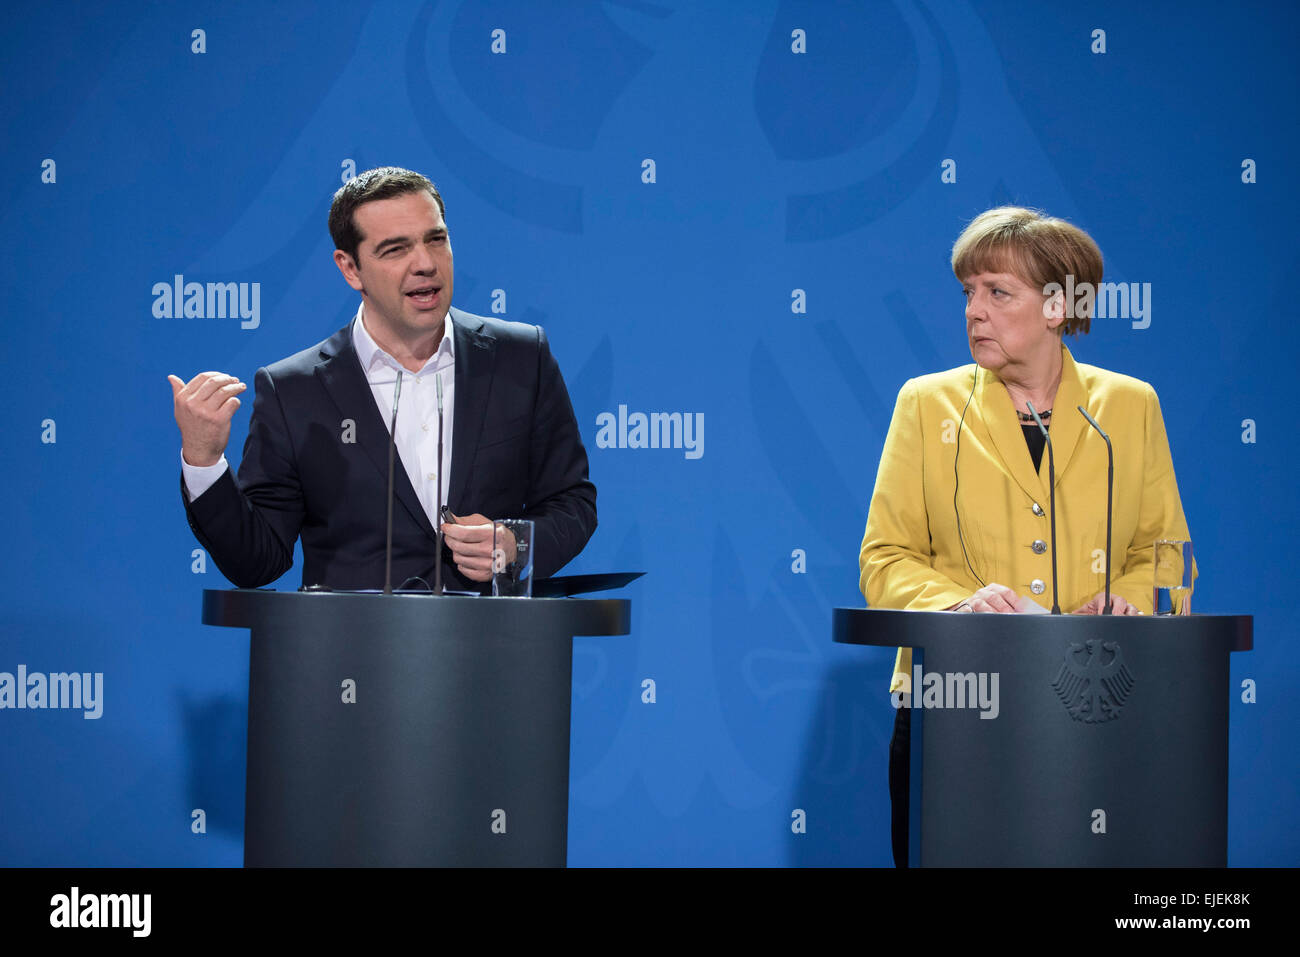 German Chancellor Angela Merkel, right, and the Prime Minister of Greece Alexis Tsipras brief the media during a - Stock Image